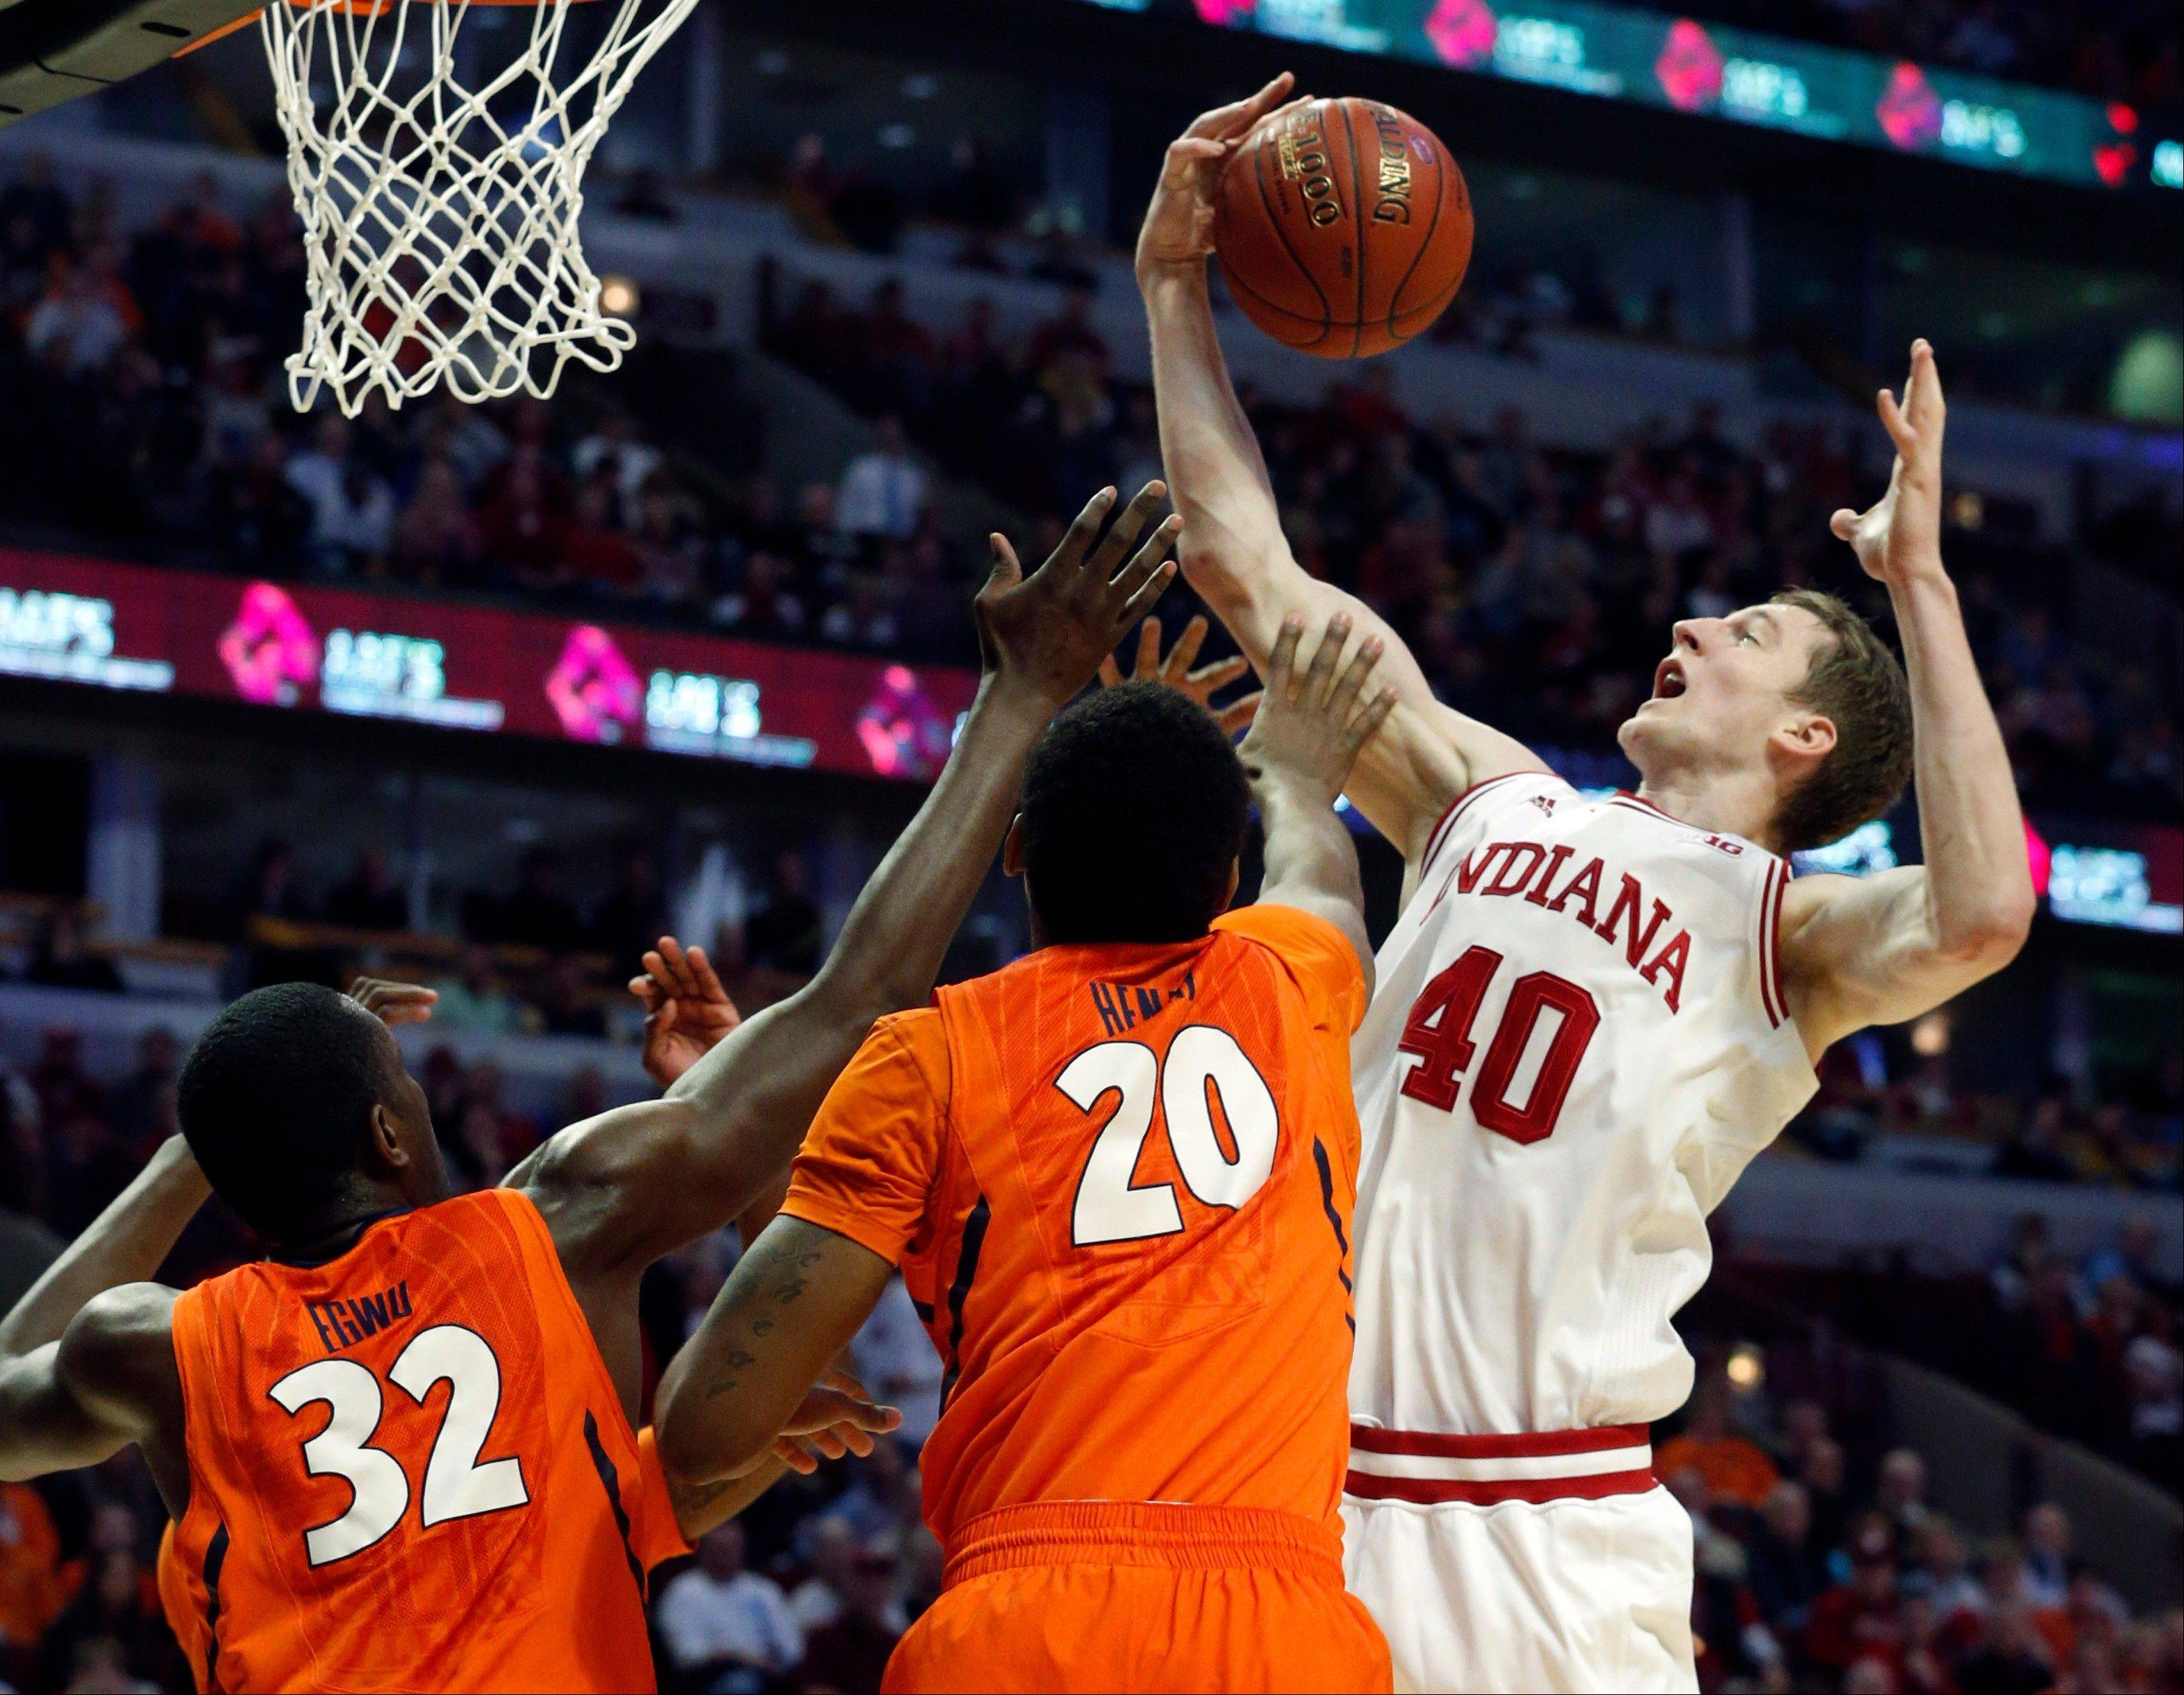 Indiana's Cody Zeller rebounds over Illinois' Nnanna Egwu (32) and Myke Henry (20) during the first half of an NCAA college basketball game at the Big Ten tournament Friday, March 15, 2013, in Chicago.